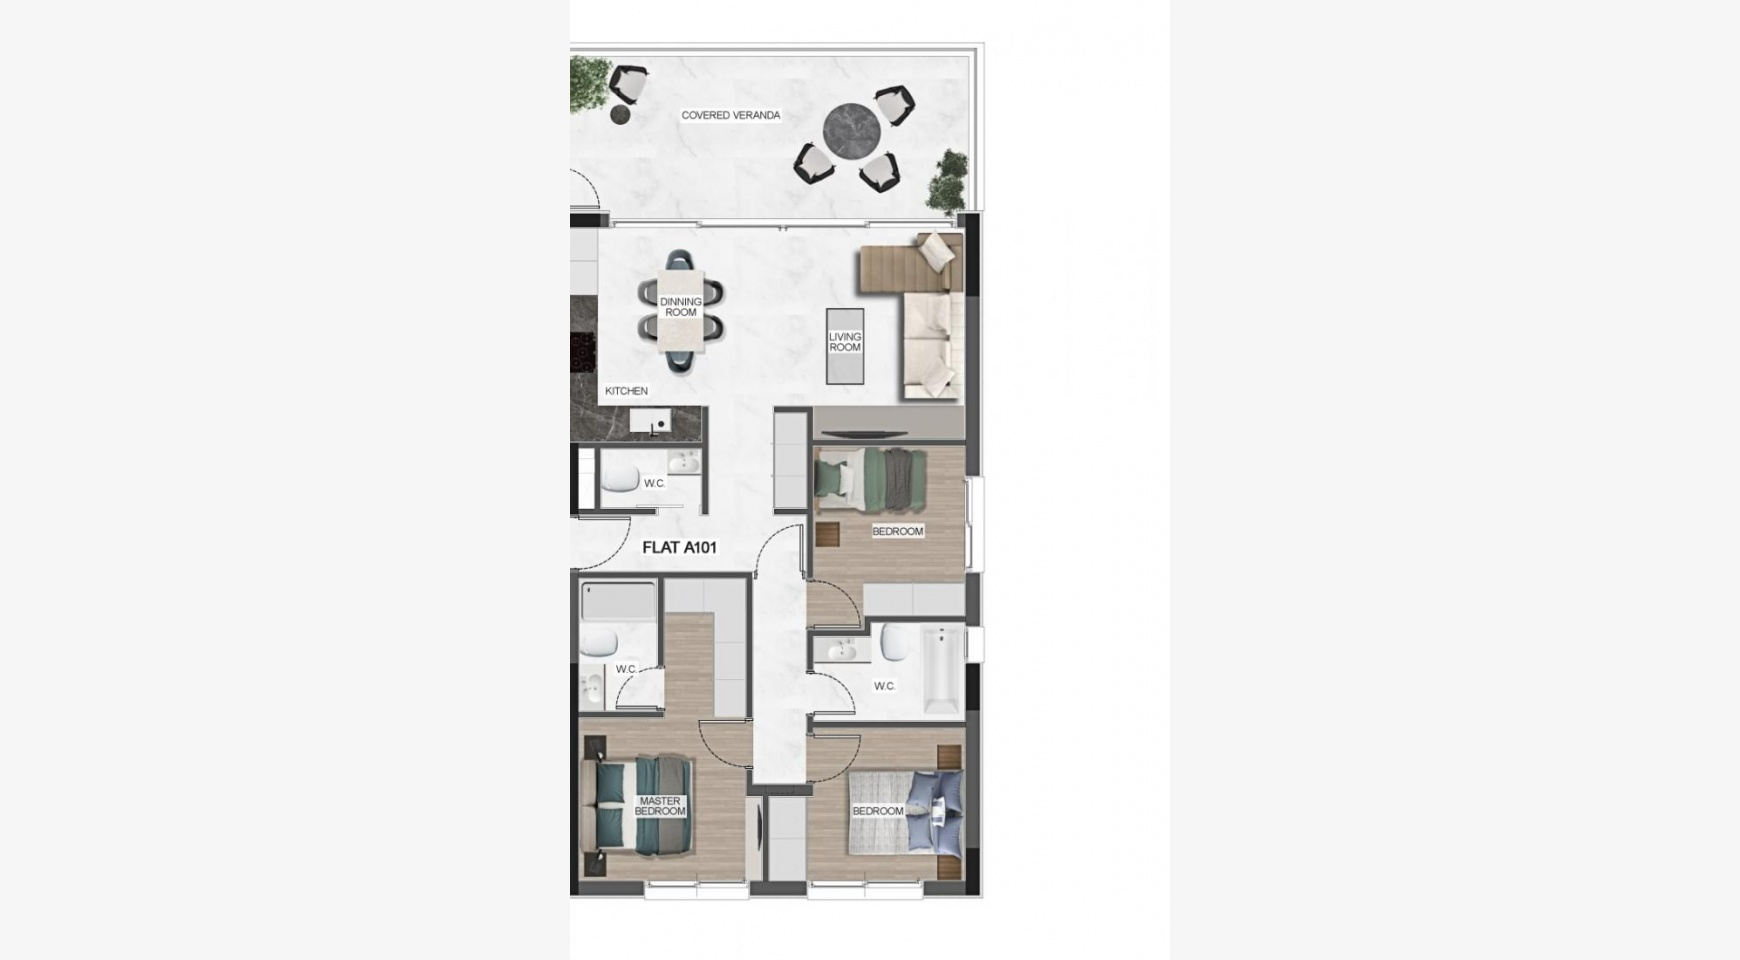 Urban City Residences, Block A. New Spacious 2 Bedroom Apartment 202 in the City Centre - 43